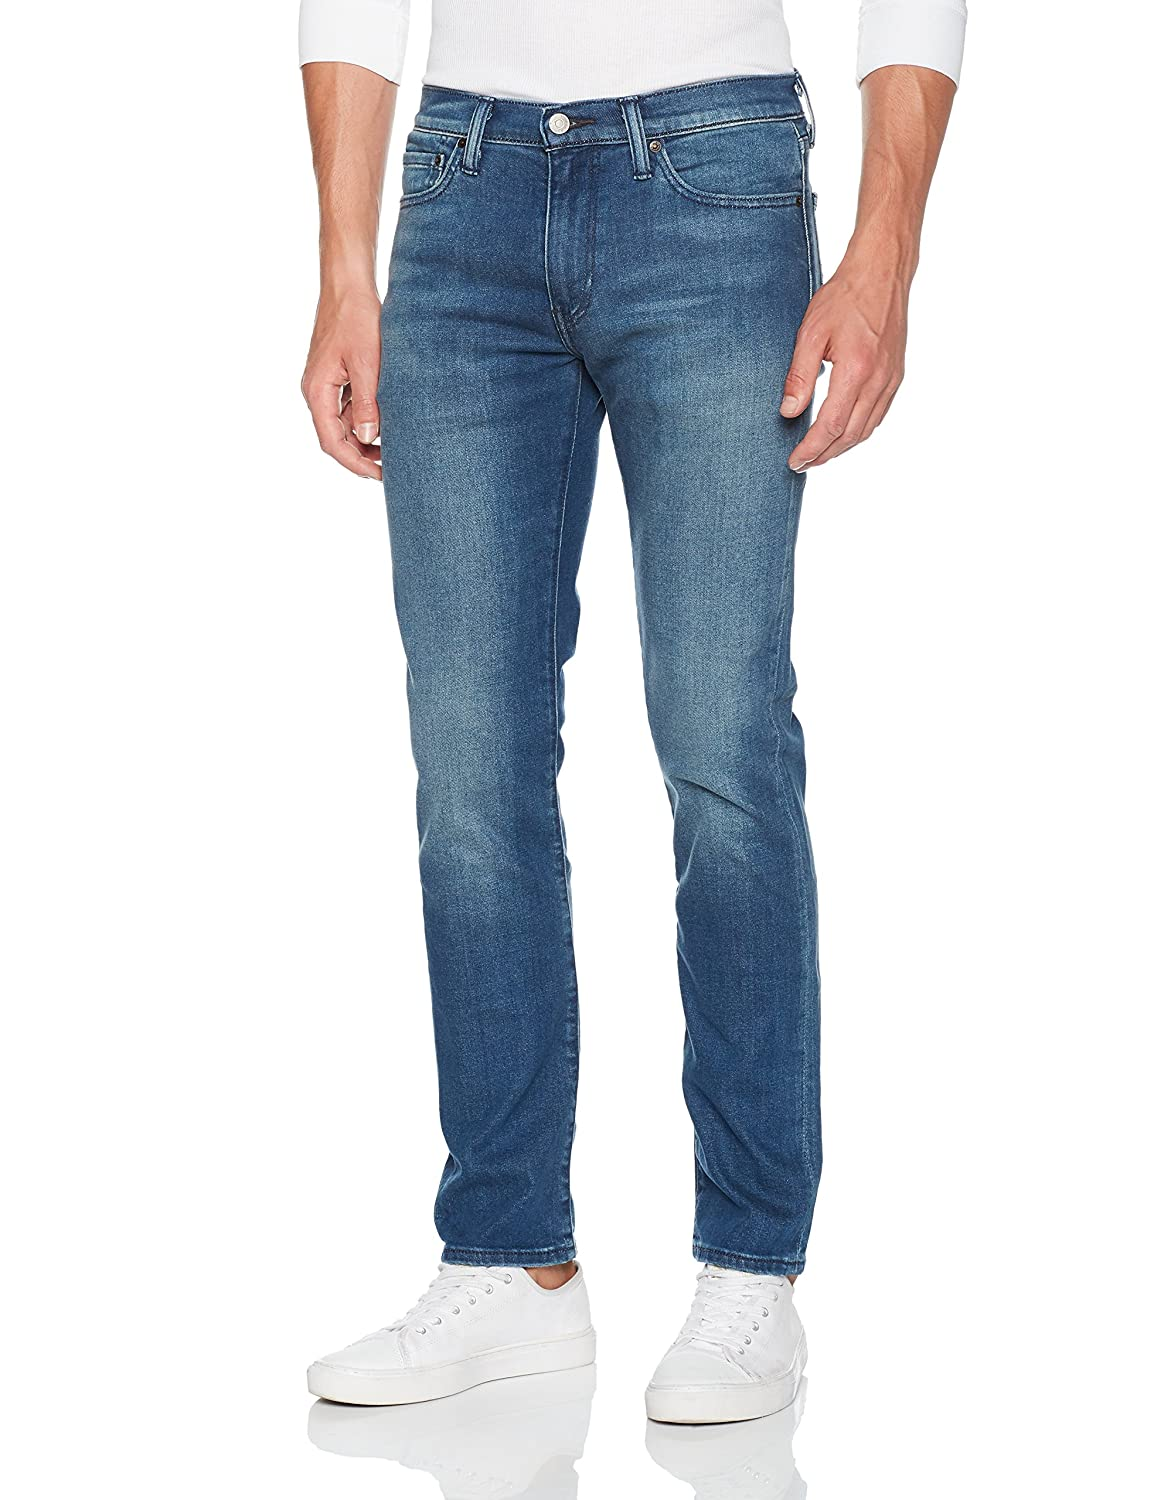 Levi's 511 Slim Fit Amazon Exclusive, Vaqueros para Hombre